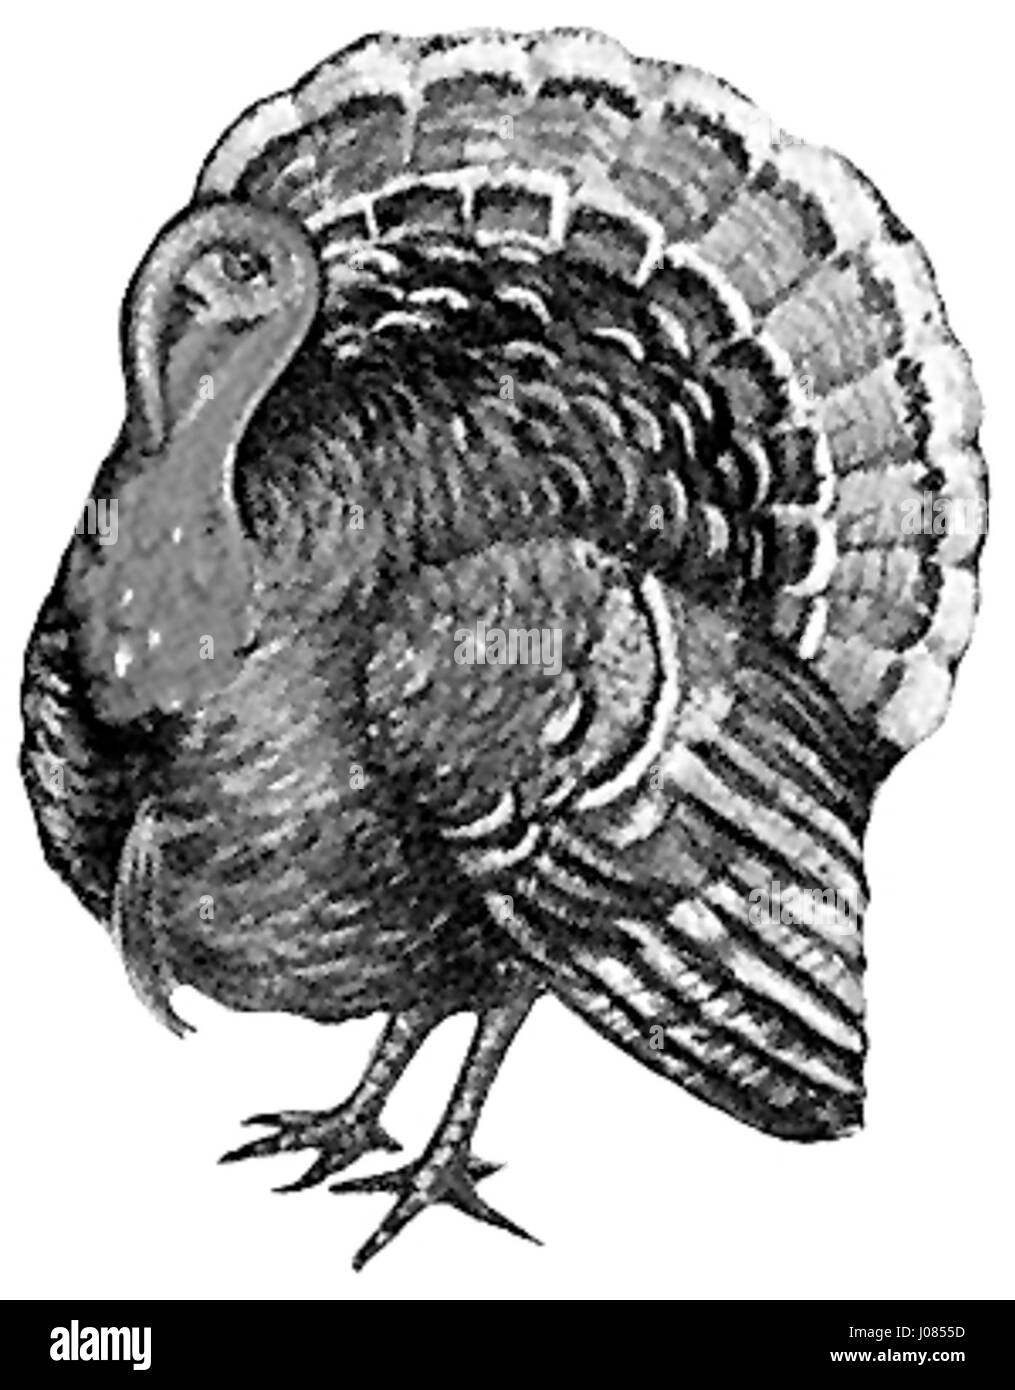 Turkey (bird) - B&W drawing Stock Photo